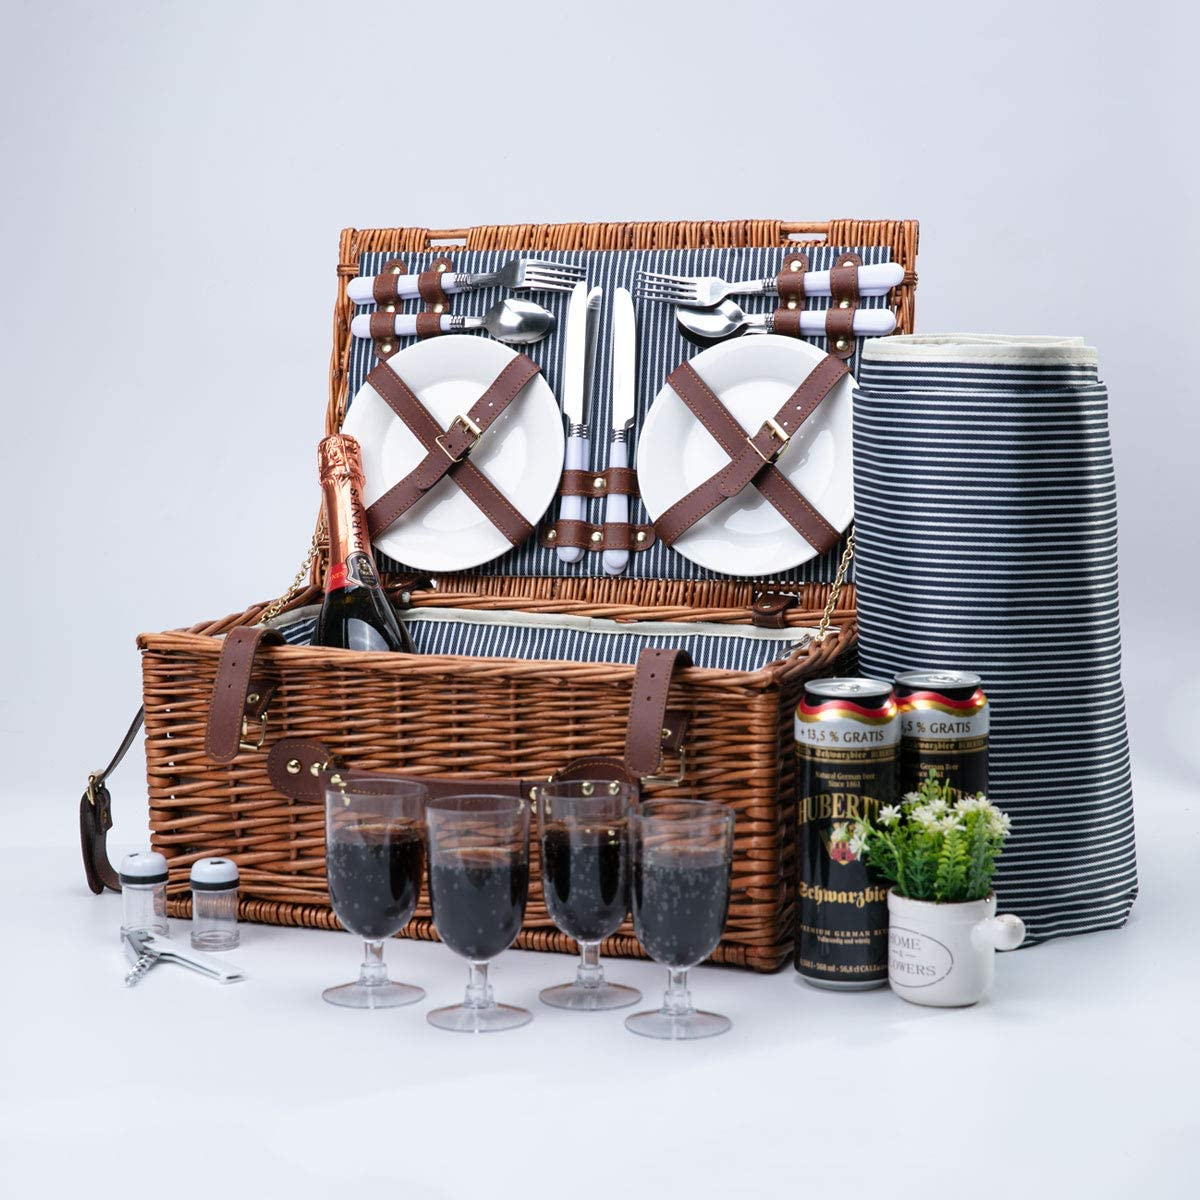 Wicker Ranking TOP9 Picnic Basket Excellent for 4 Compart Persons Insulated Cooler with